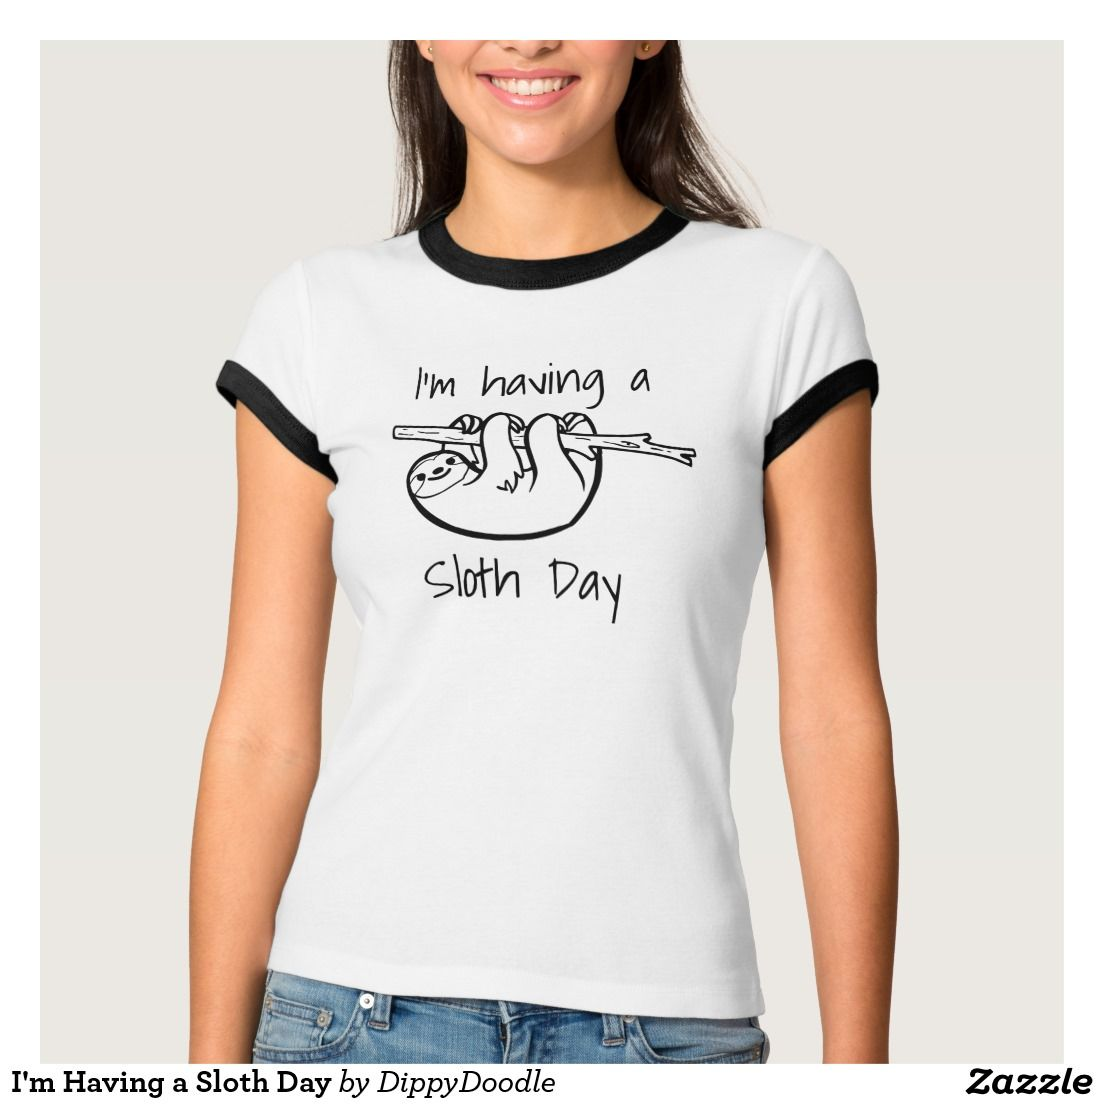 I'm Having a Sloth Day. Funny slogan t-shirt for lazy days when you don't intend to do anything more strenuous than making a cup of tea...or you simply love sloths.